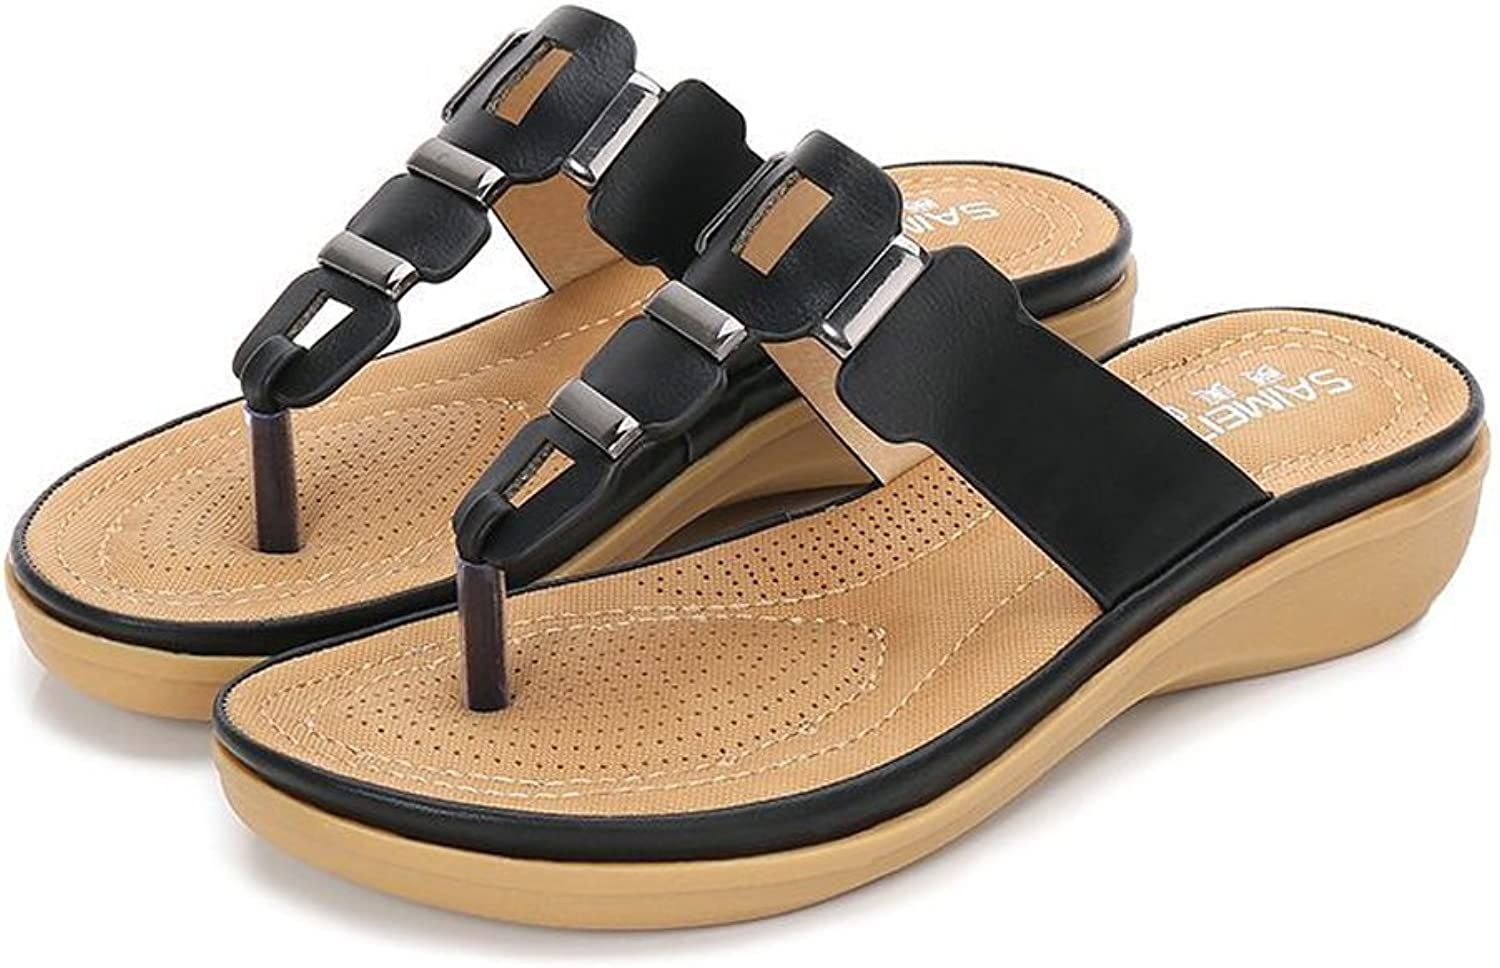 Tuoup Womens Fashion Leather Flip Flops Sandles Sandals